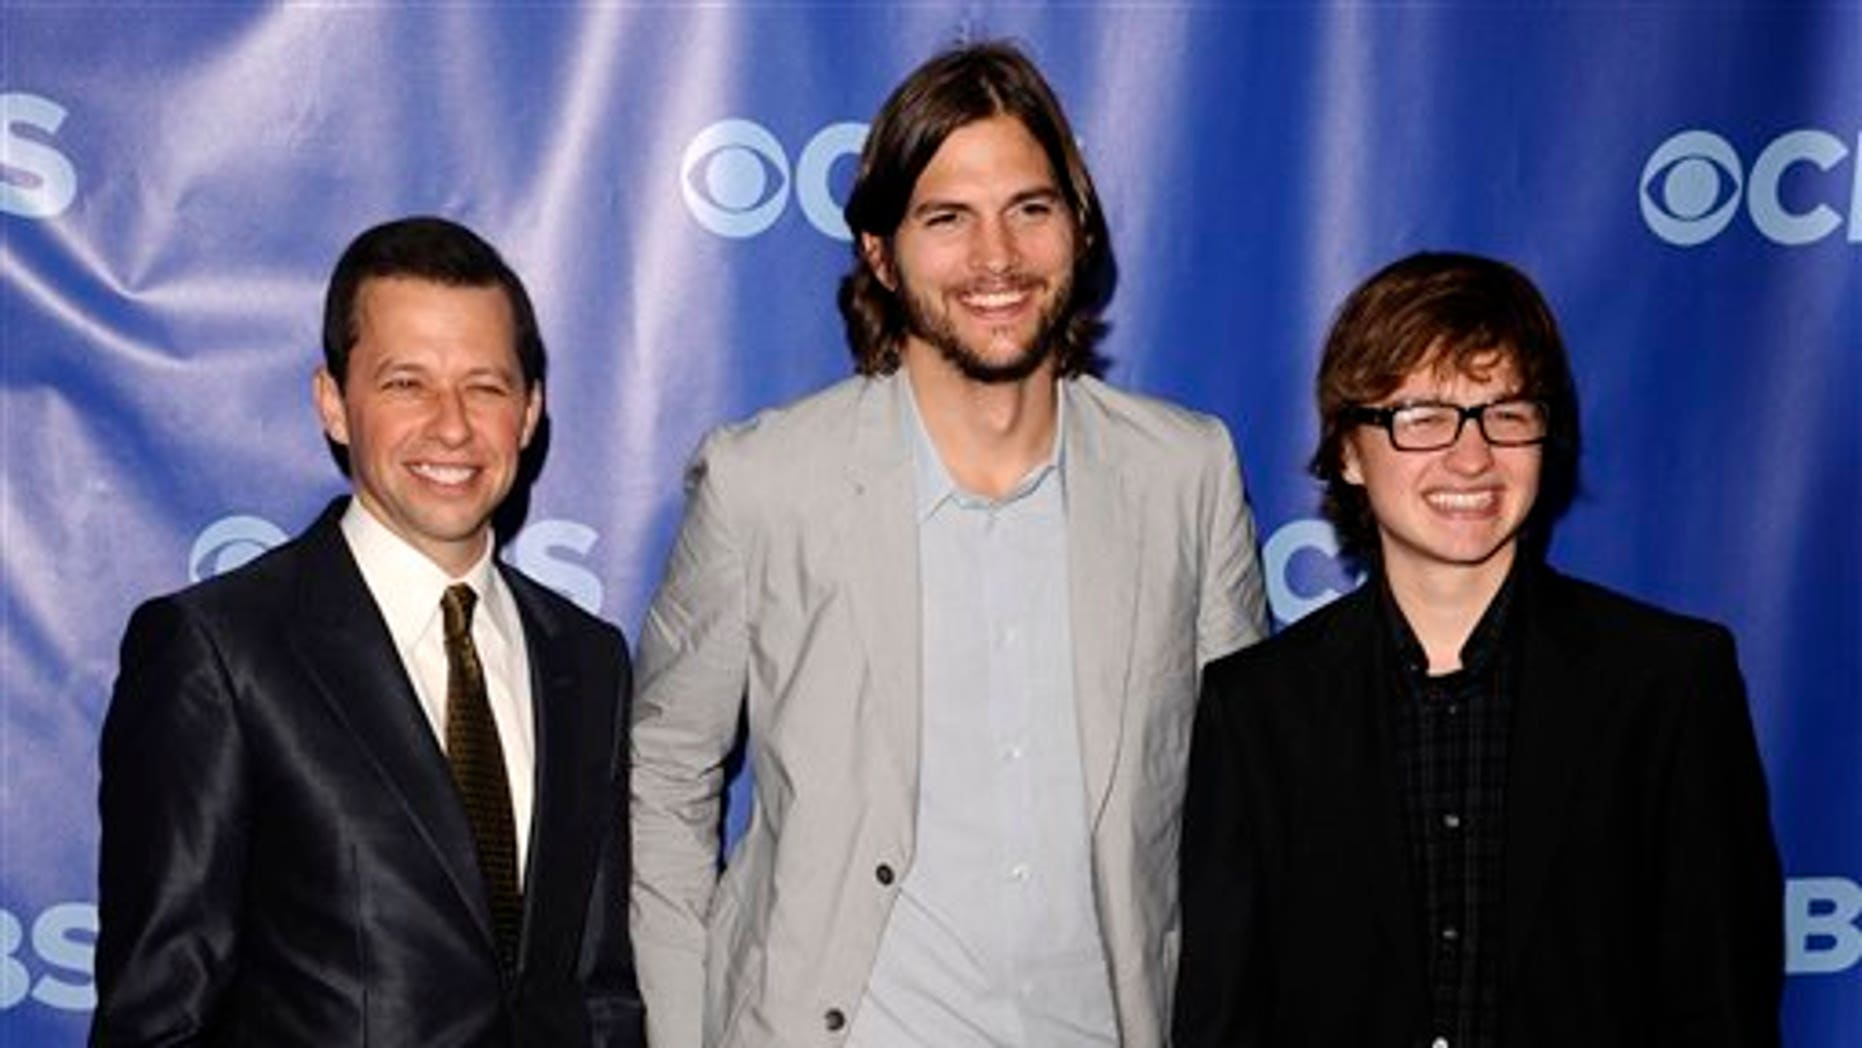 In this May 18, 2011 file photo, actors, from left, Jon Cryer, Ashton Kutcher and Angus T. Jones attend the 2011 CBS Upfront party in New York. (AP)